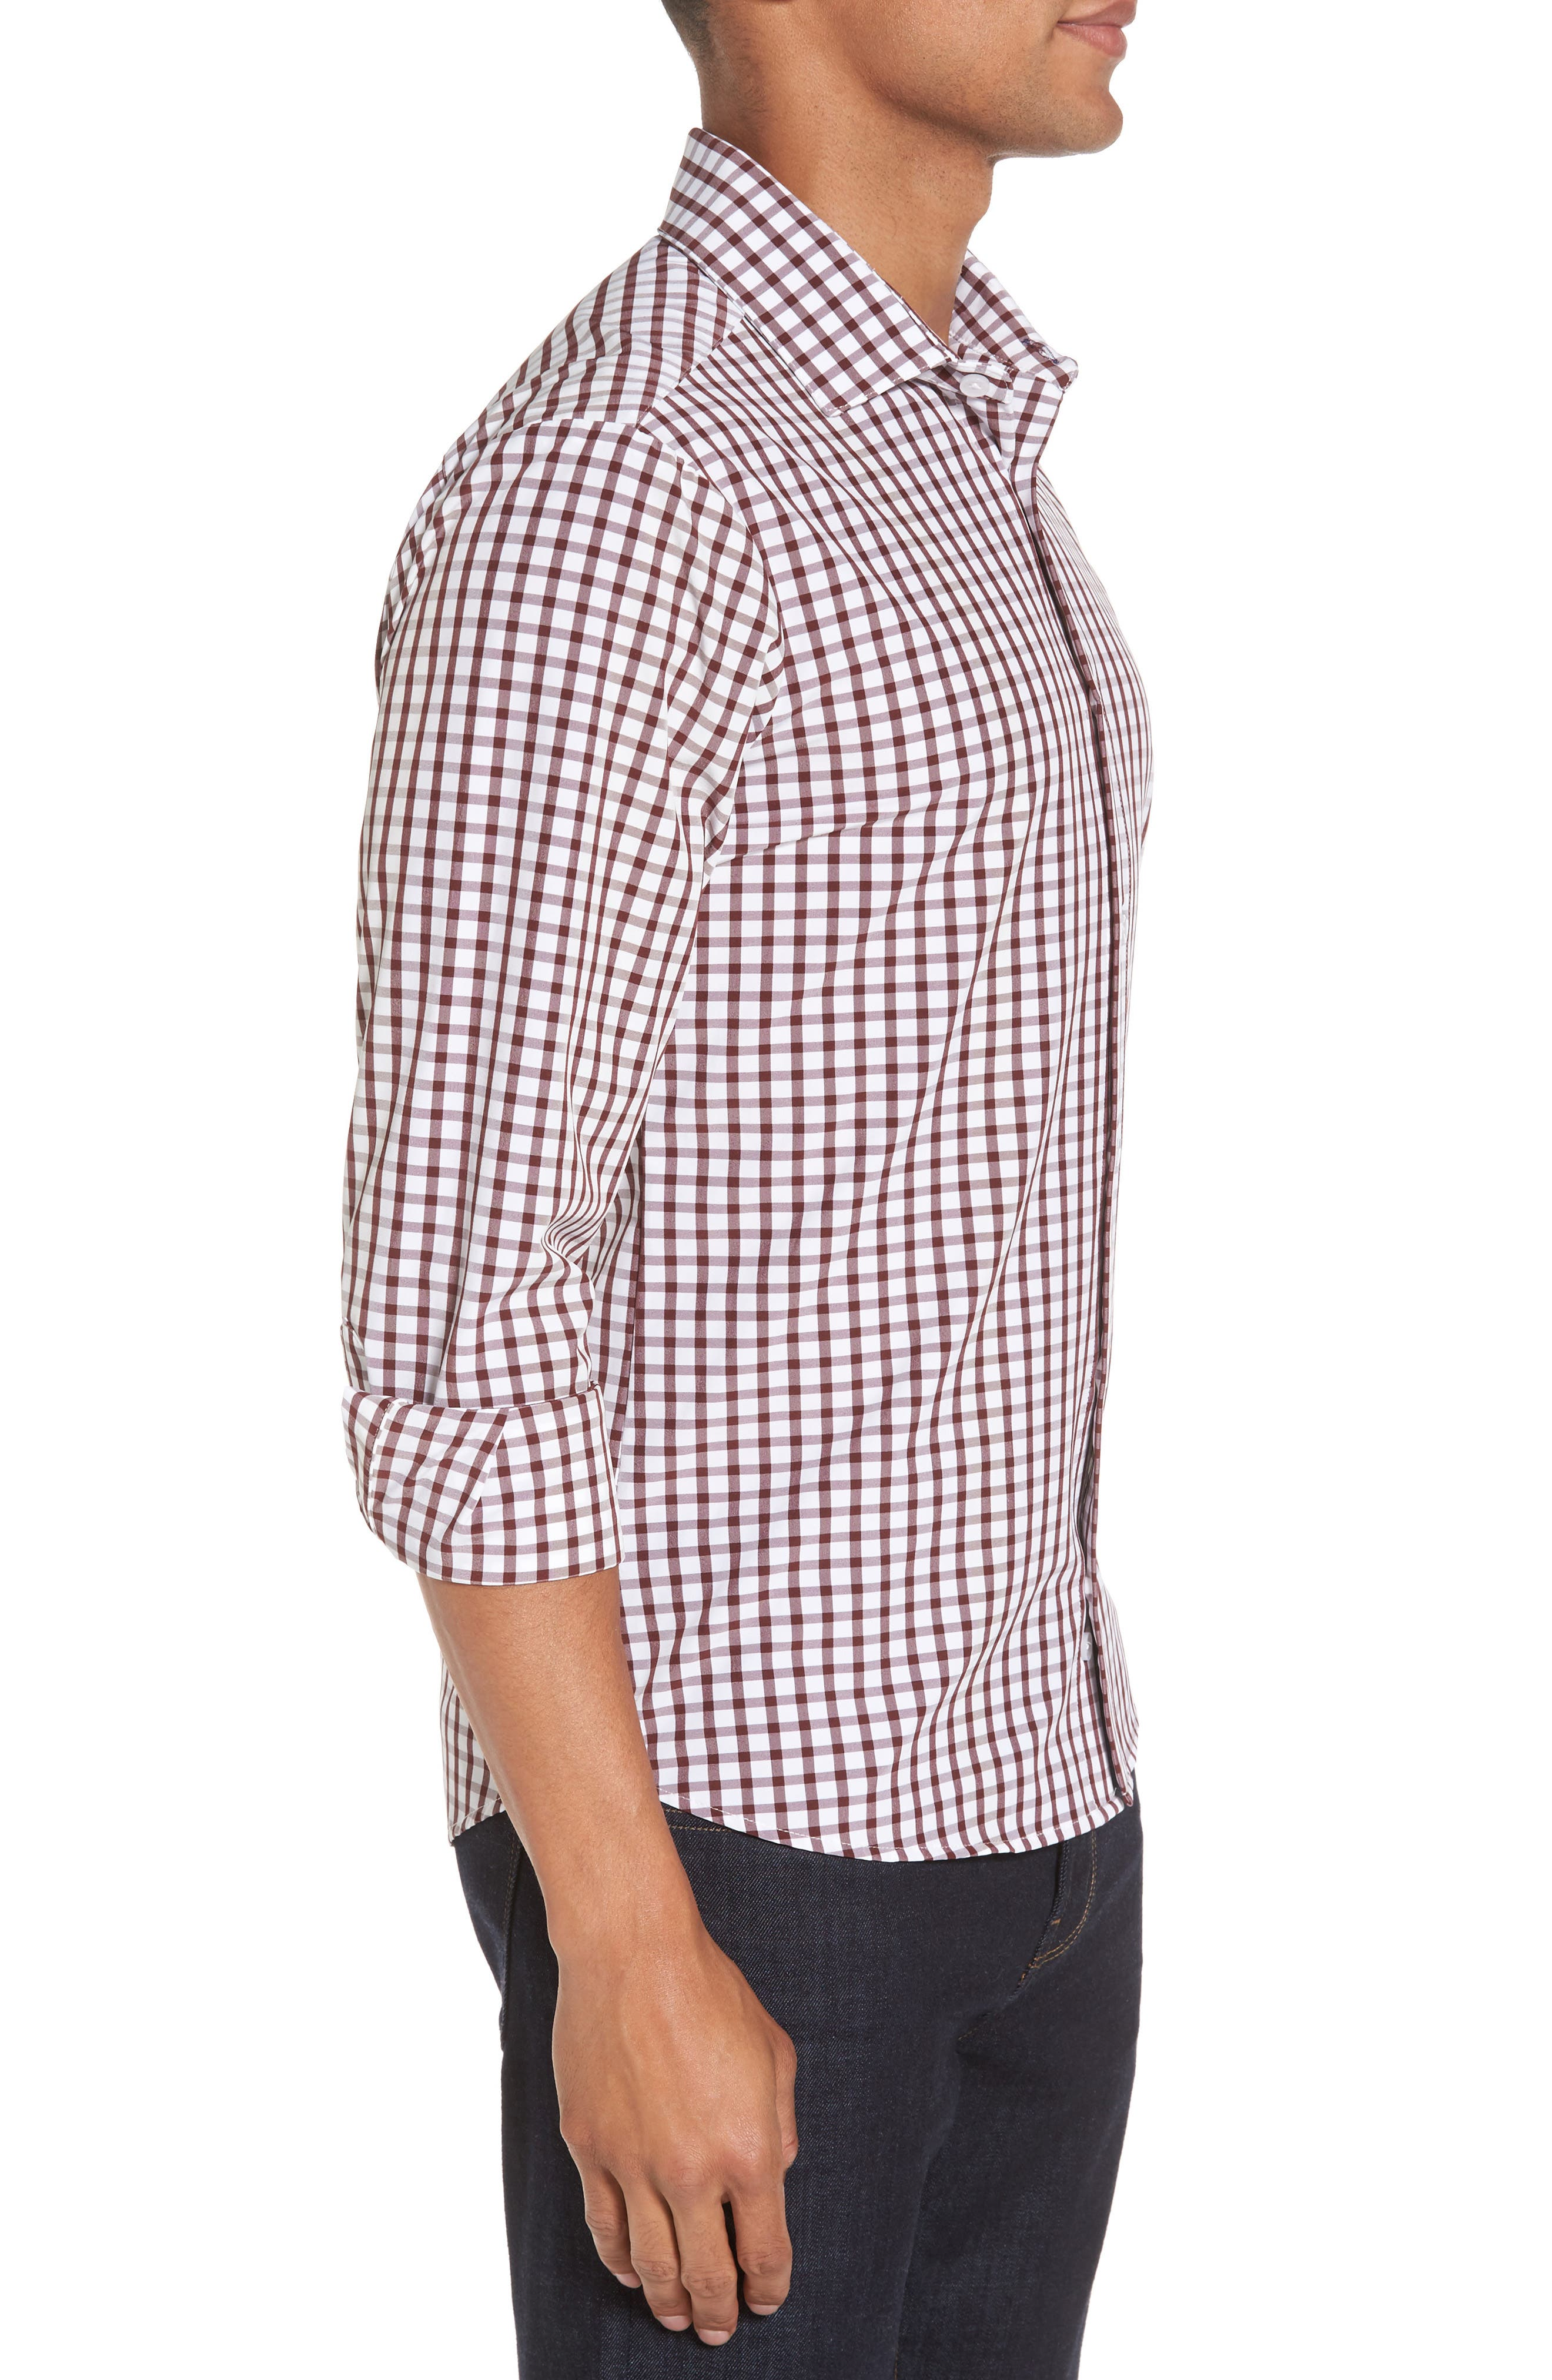 Cooper Check Performance Sport Shirt,                             Alternate thumbnail 3, color,                             Red